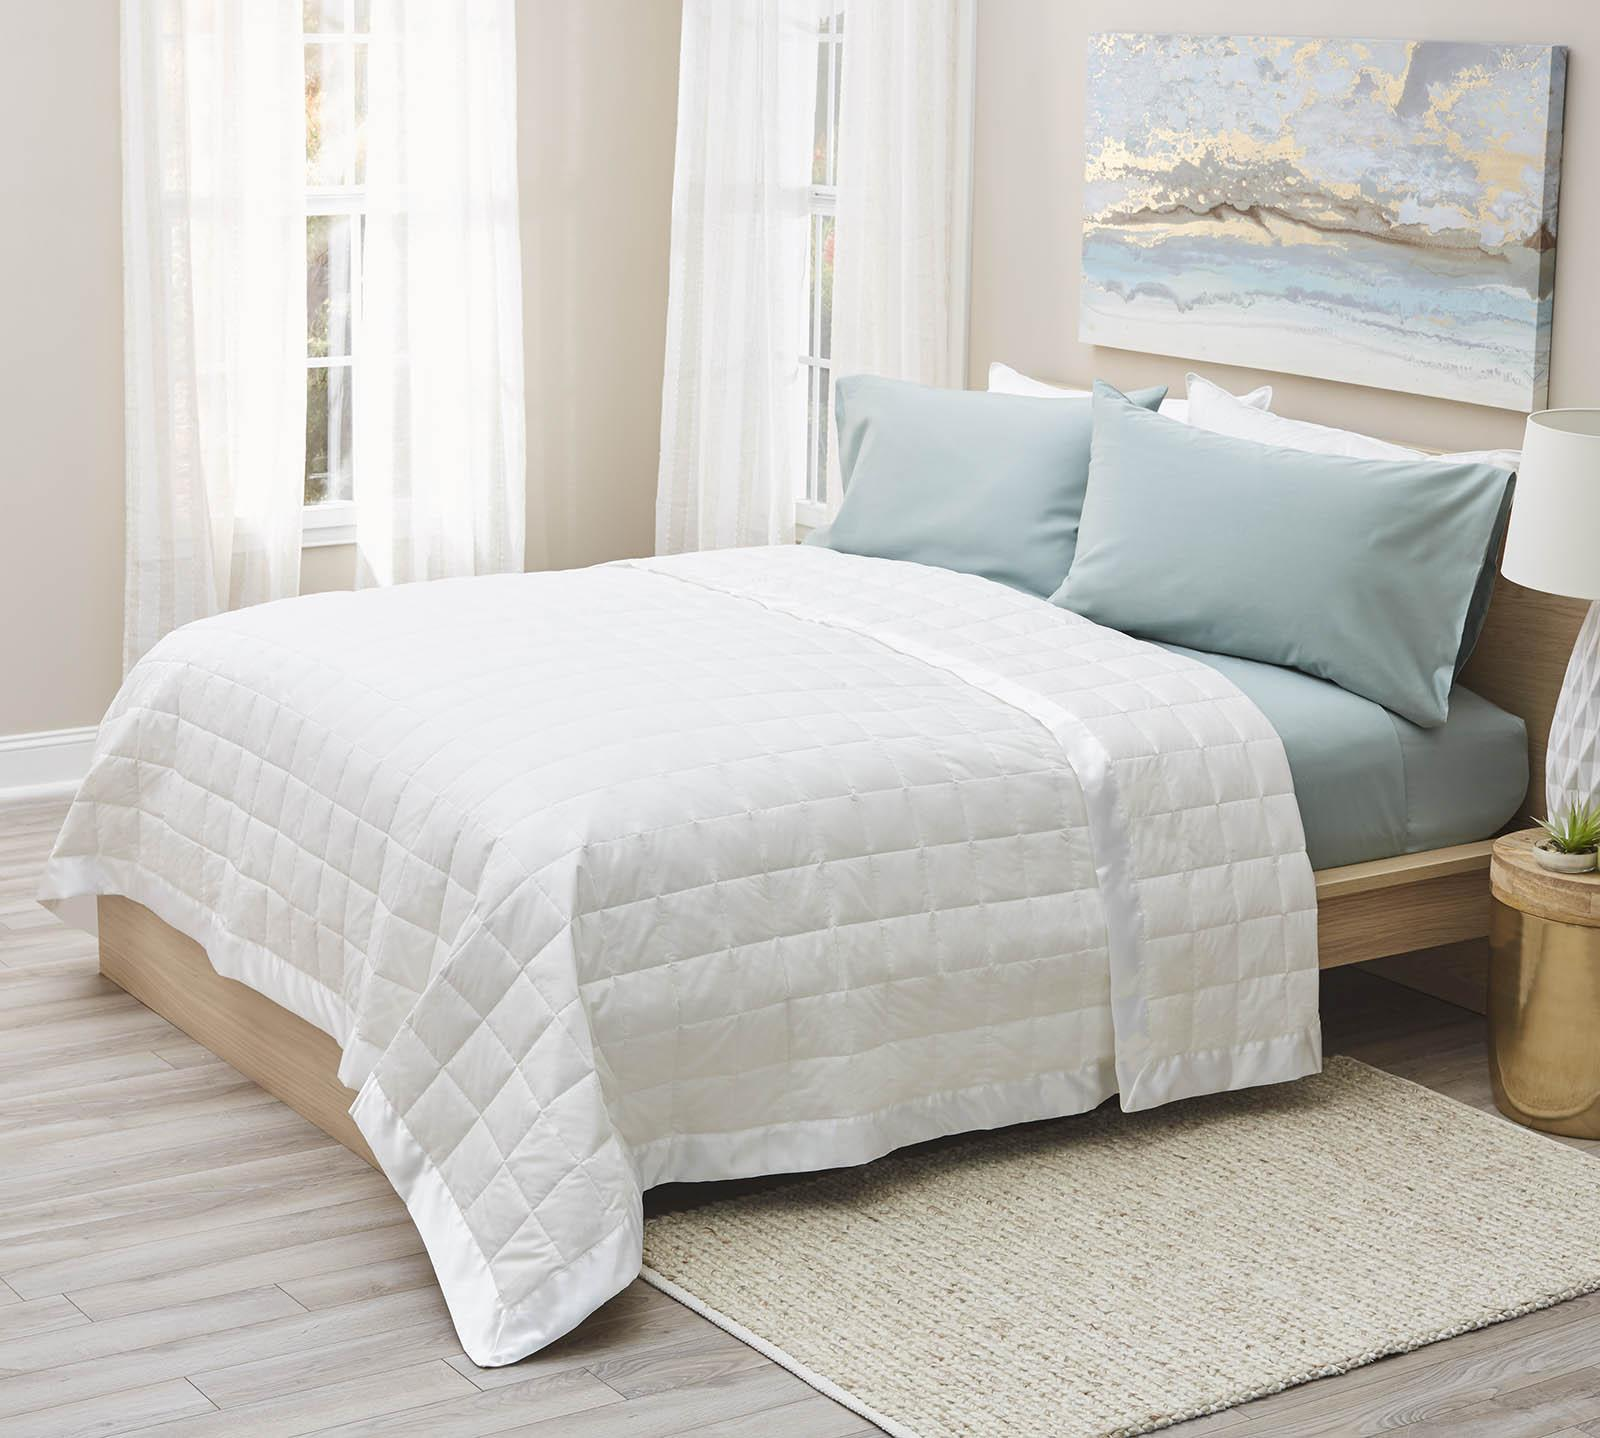 Lux Living Naturals King Lightweight White Oversized Down Filled Blanket